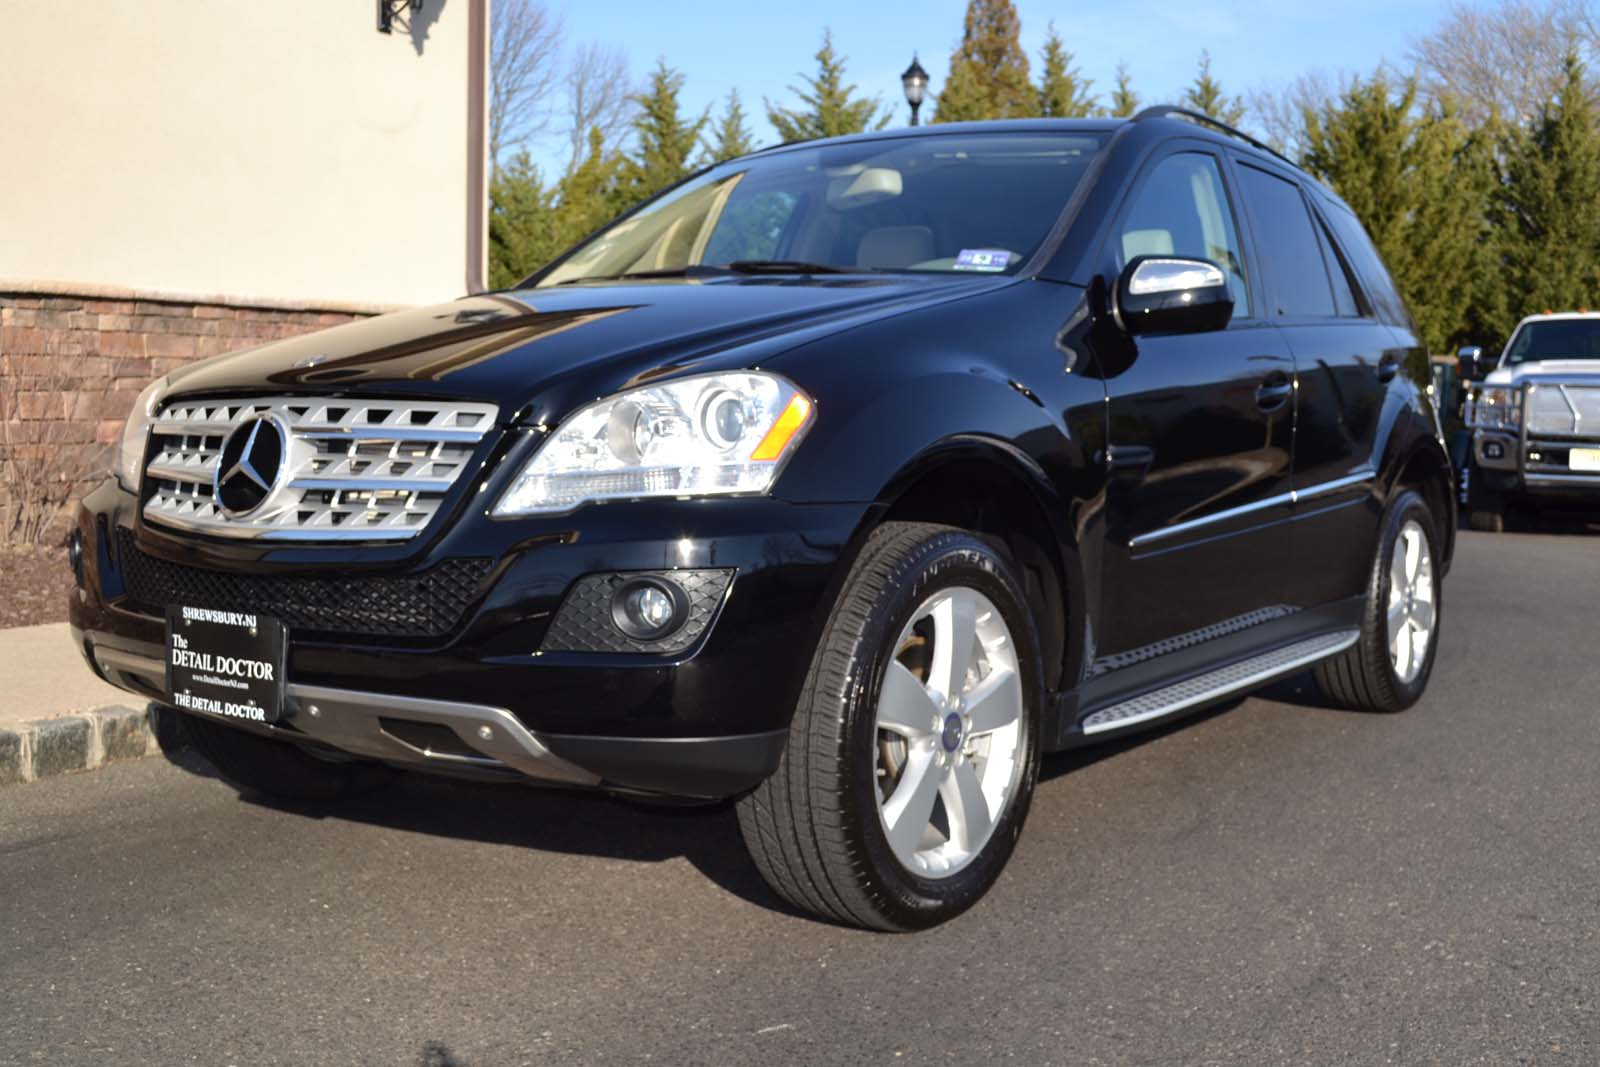 7 Passenger Vehicles >> 2009 Mercedes Benz ML350 4Matic Pre-Owned